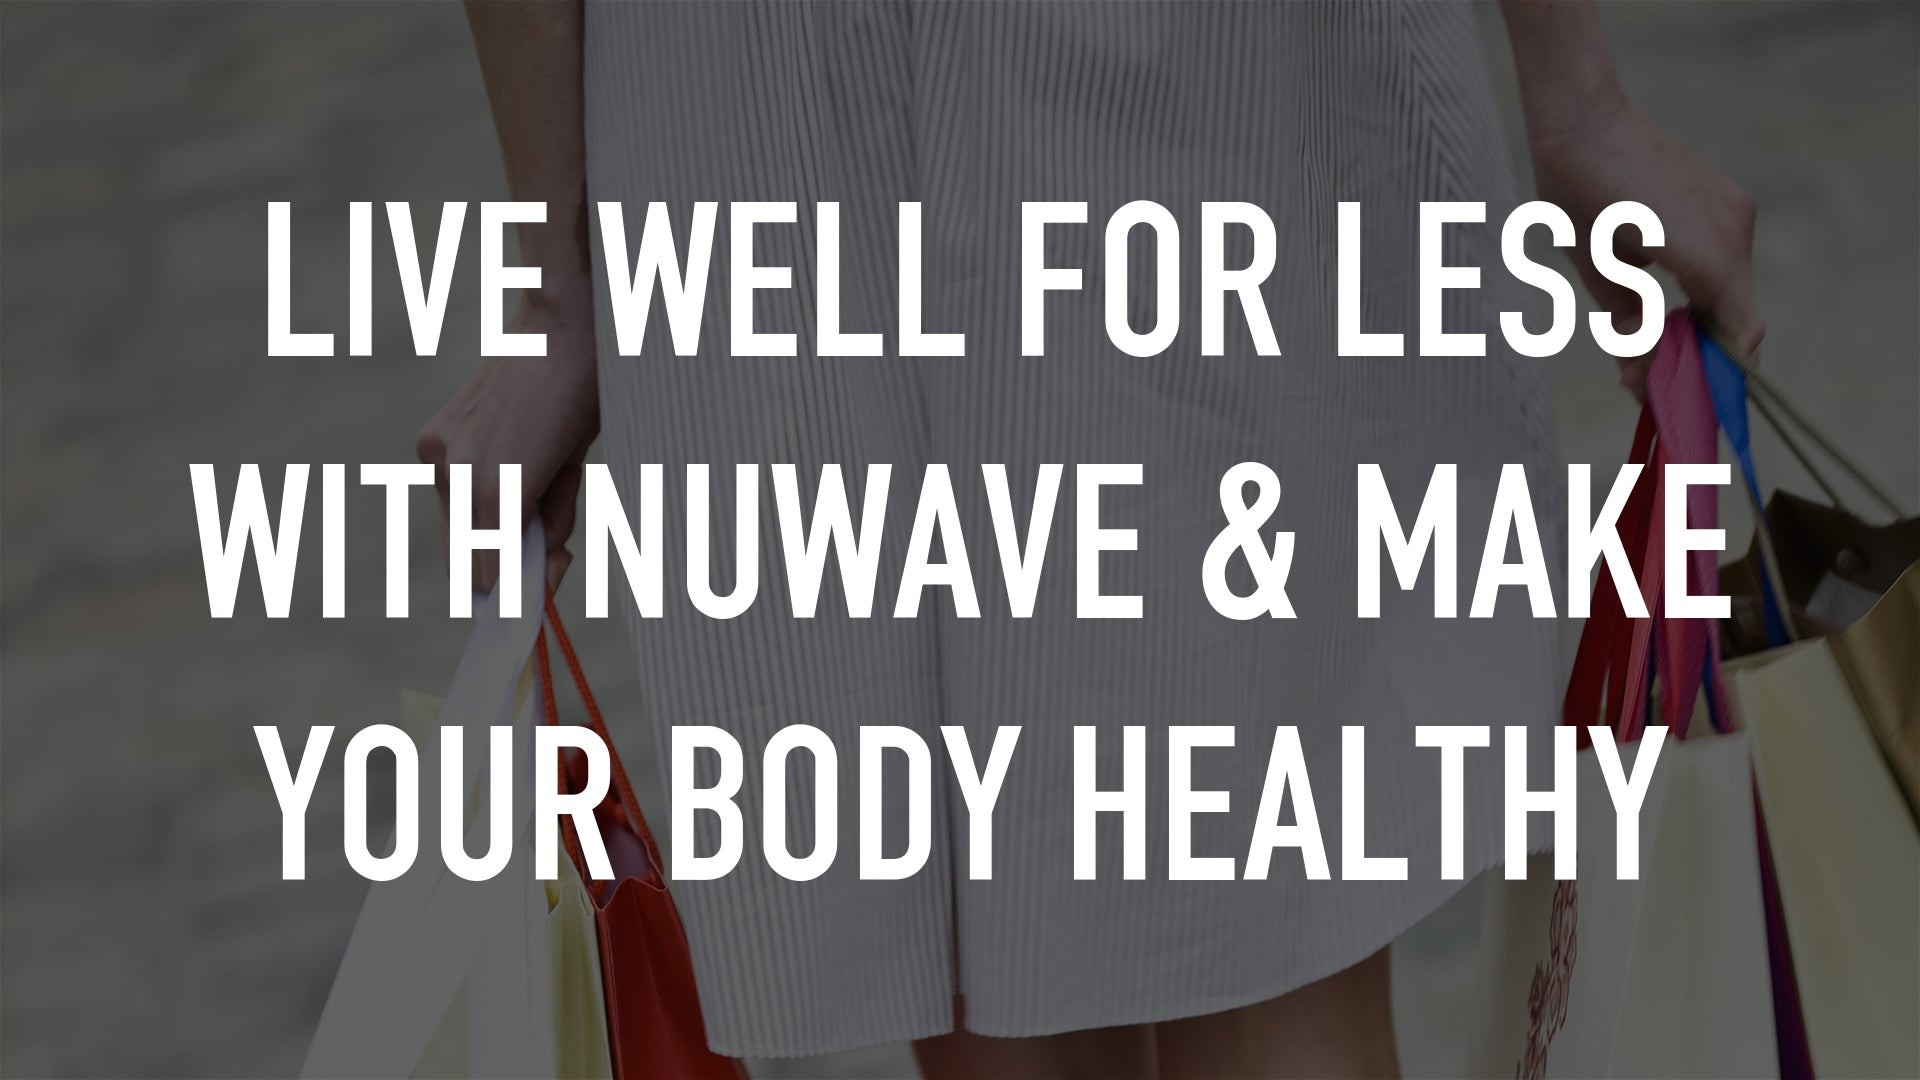 Live Well for Less with Nuwave & Make Your Body Healthy